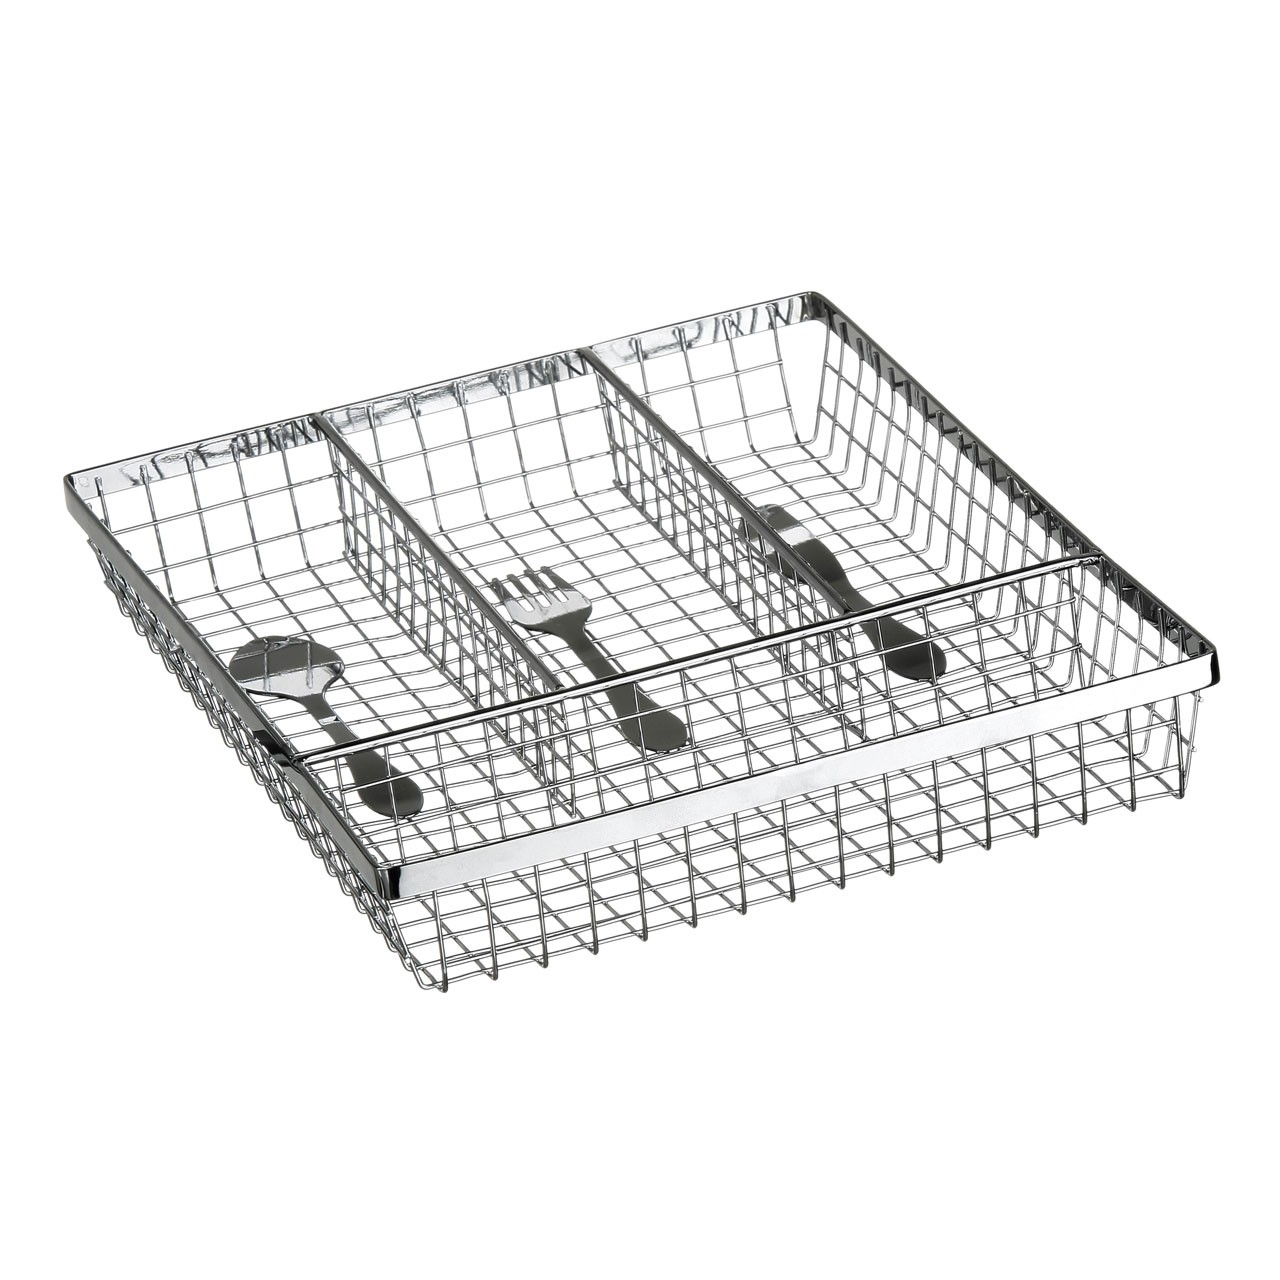 Premier Housewares Cutlery Design Cutlery Tray - Chrome